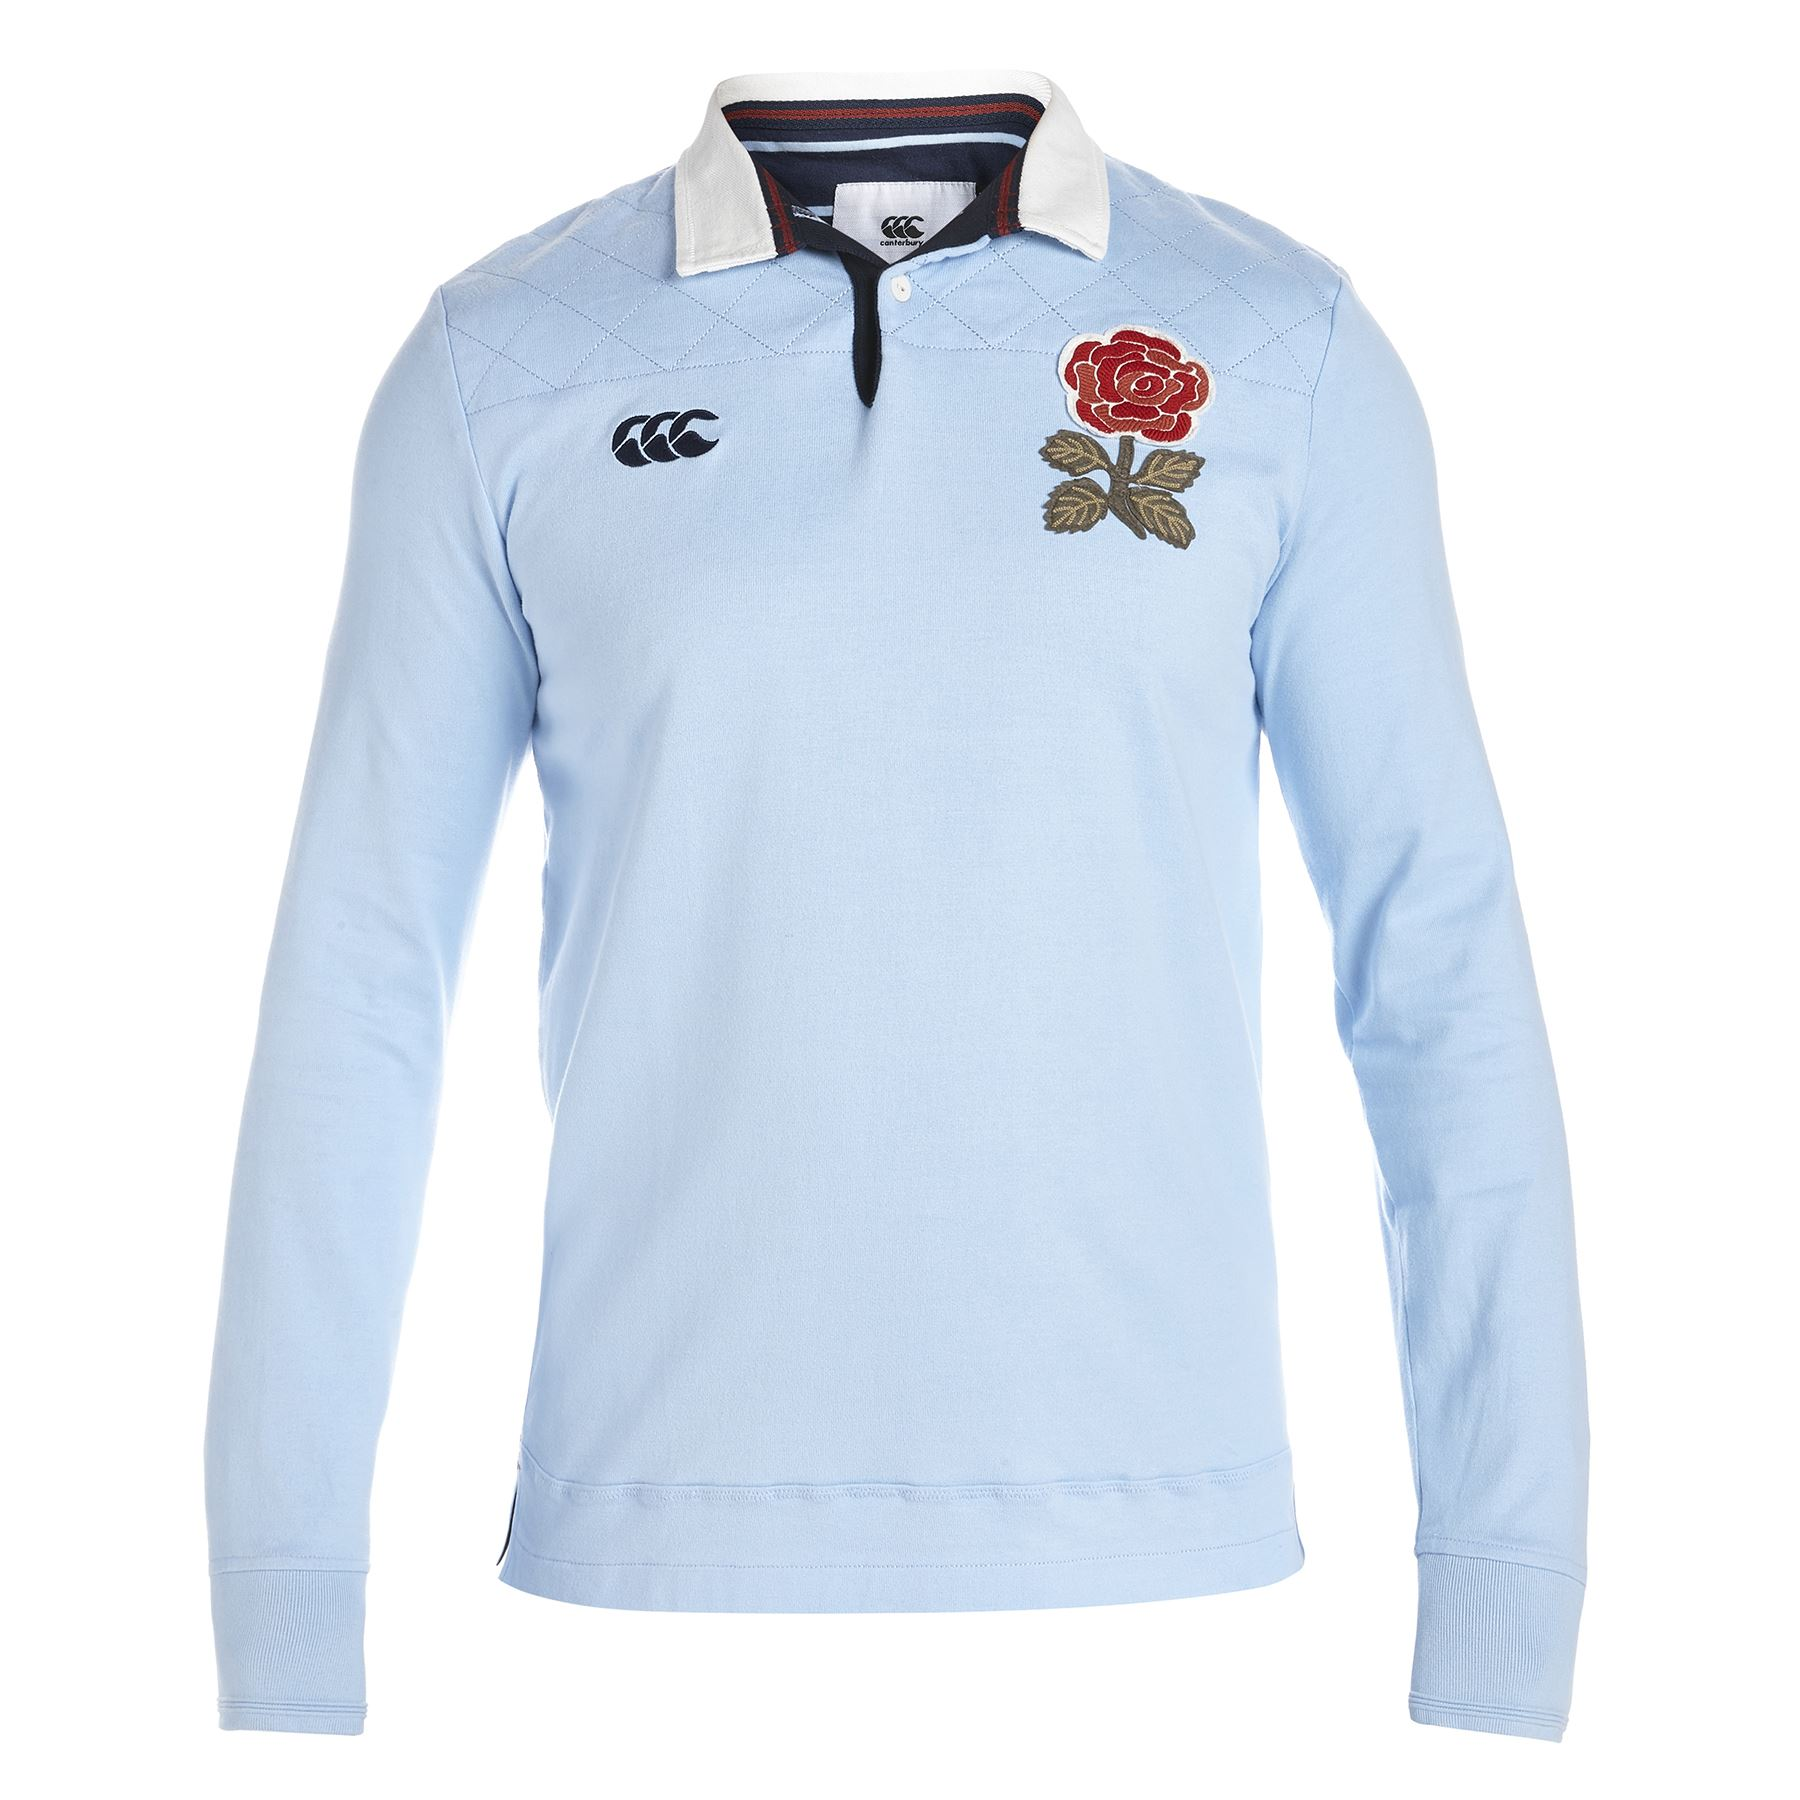 Guinness Men's Blue Short Sleeve Rugby Shirt With Red Logo. from $ 24 90 Prime. 5 out of 5 stars 7. Charles River Apparel. Men's Hooded Rugby. from $ 15 18 Prime. out of 5 stars Guinness Official Merchandise. Guinness Traditional Black Rugby Jersey $ 69 95 Prime. out of 5 stars 5.